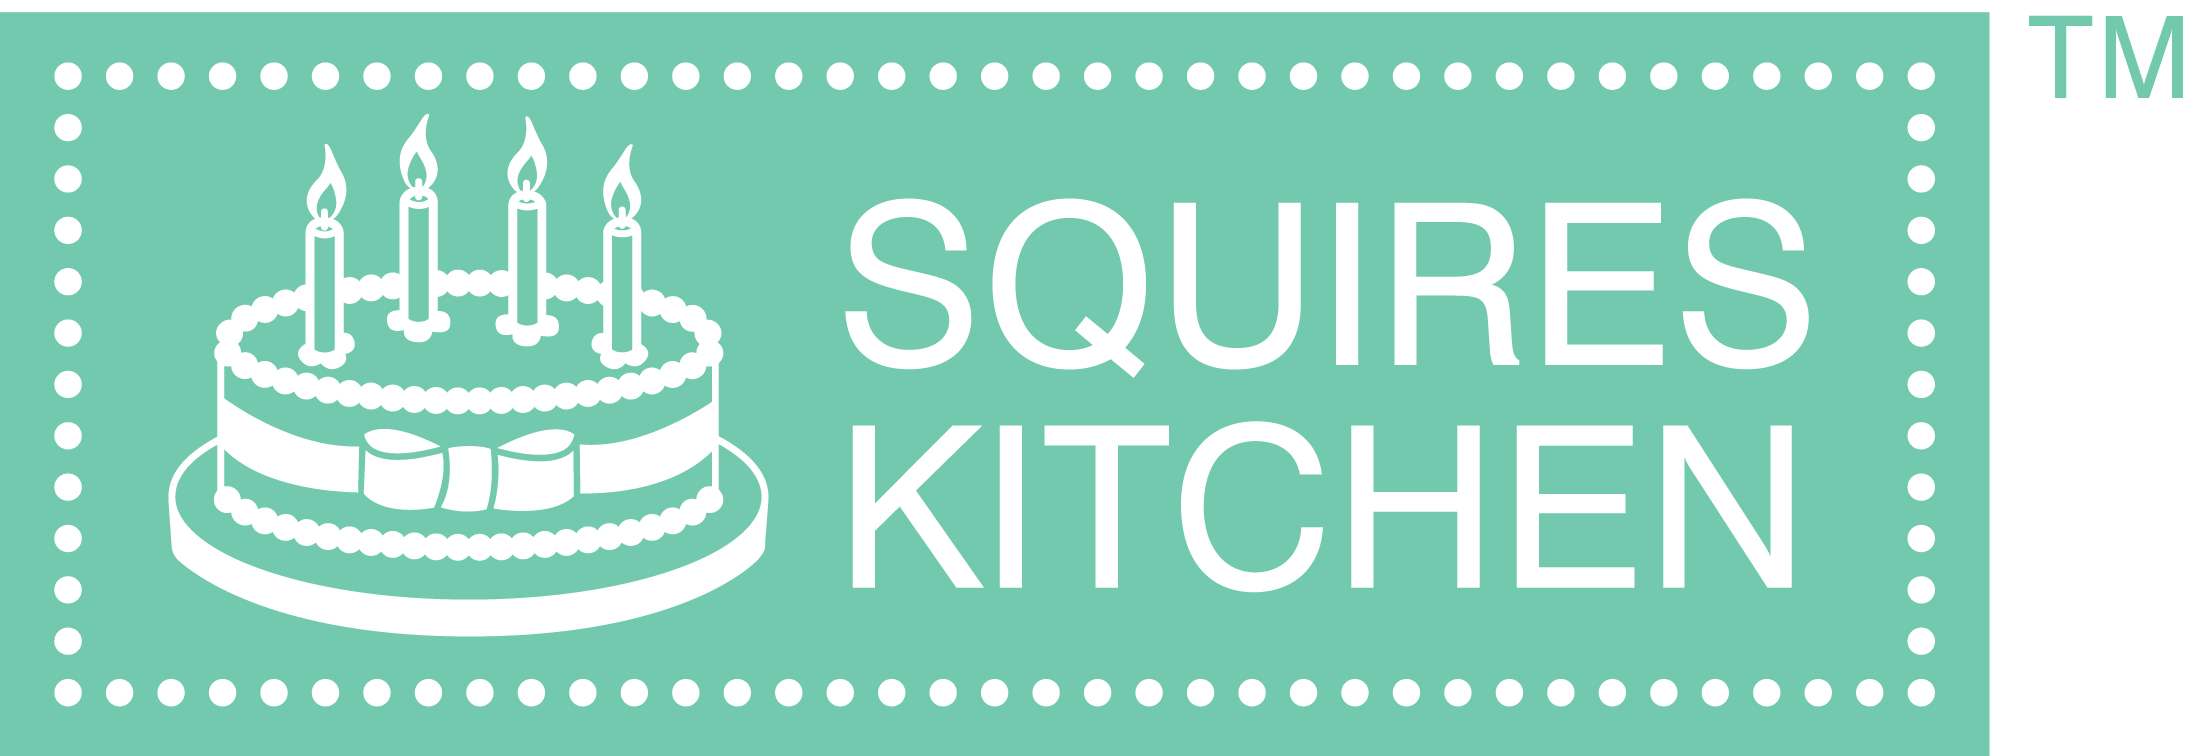 Squires Kitchen logo